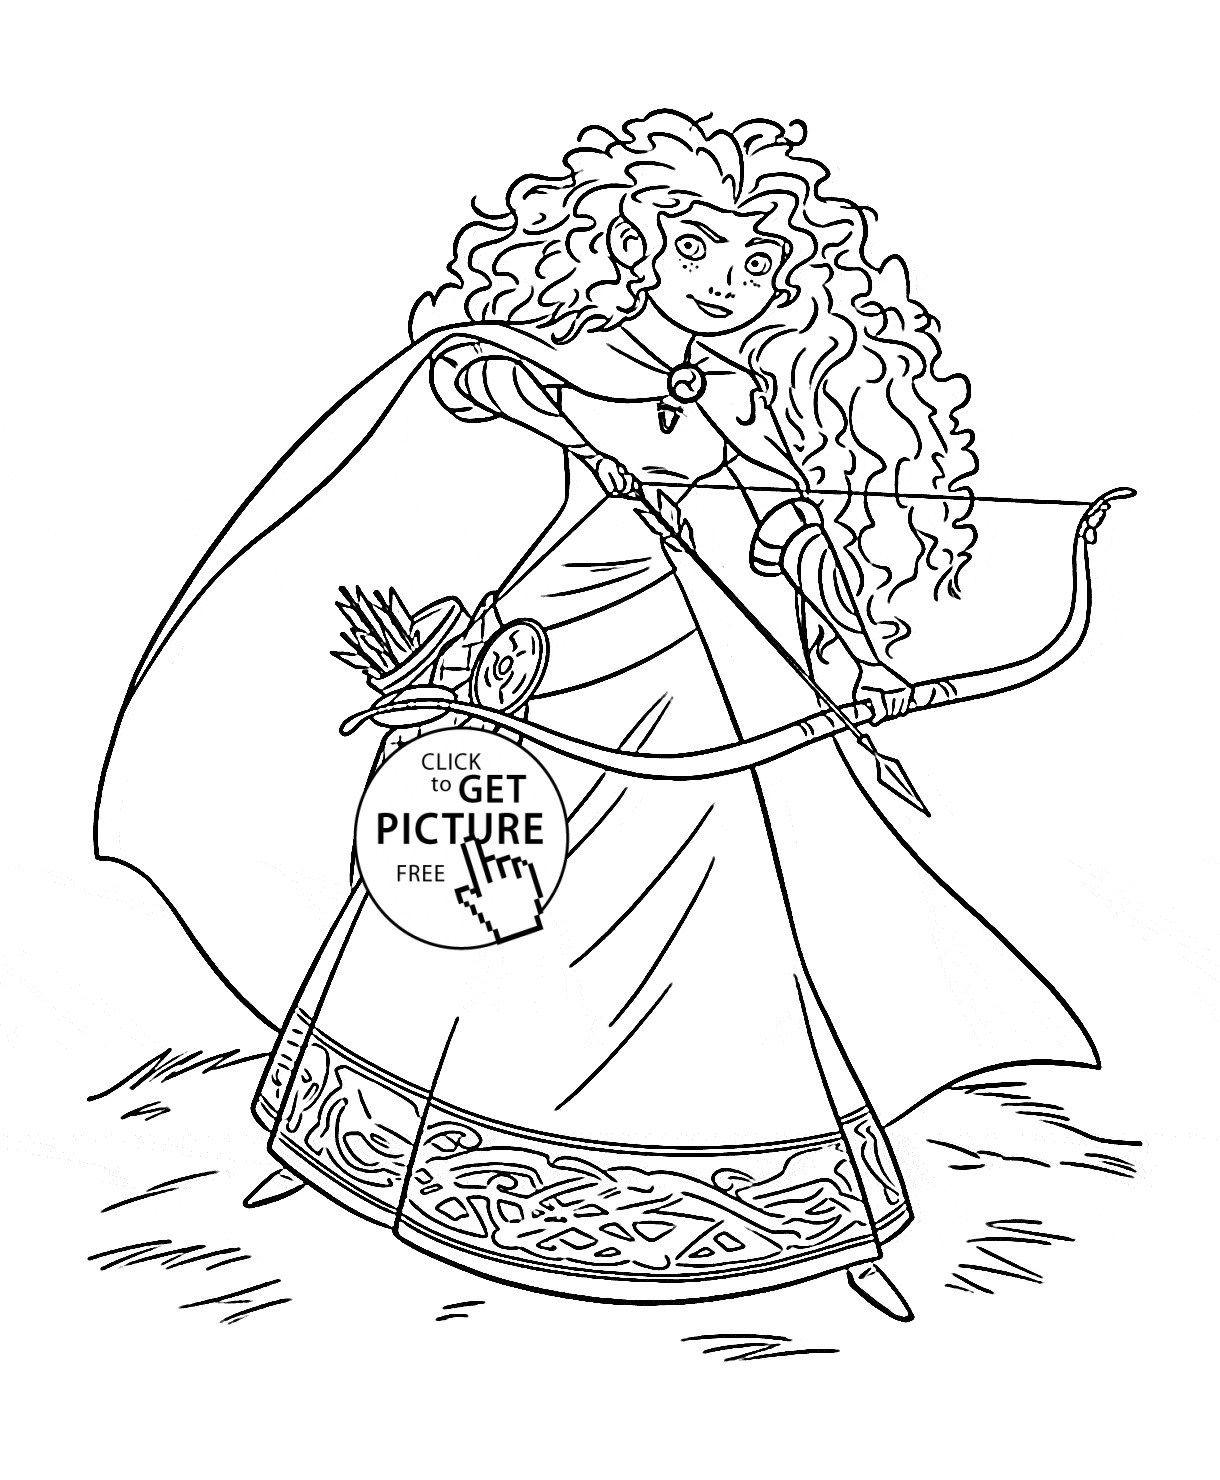 Disney Princess Coloring Page Brave Princess Merida Coloring Page For Kids Disney Princess Birijus Com Disney Princess Coloring Pages Disney Princess Colors Princess Coloring Pages Printables